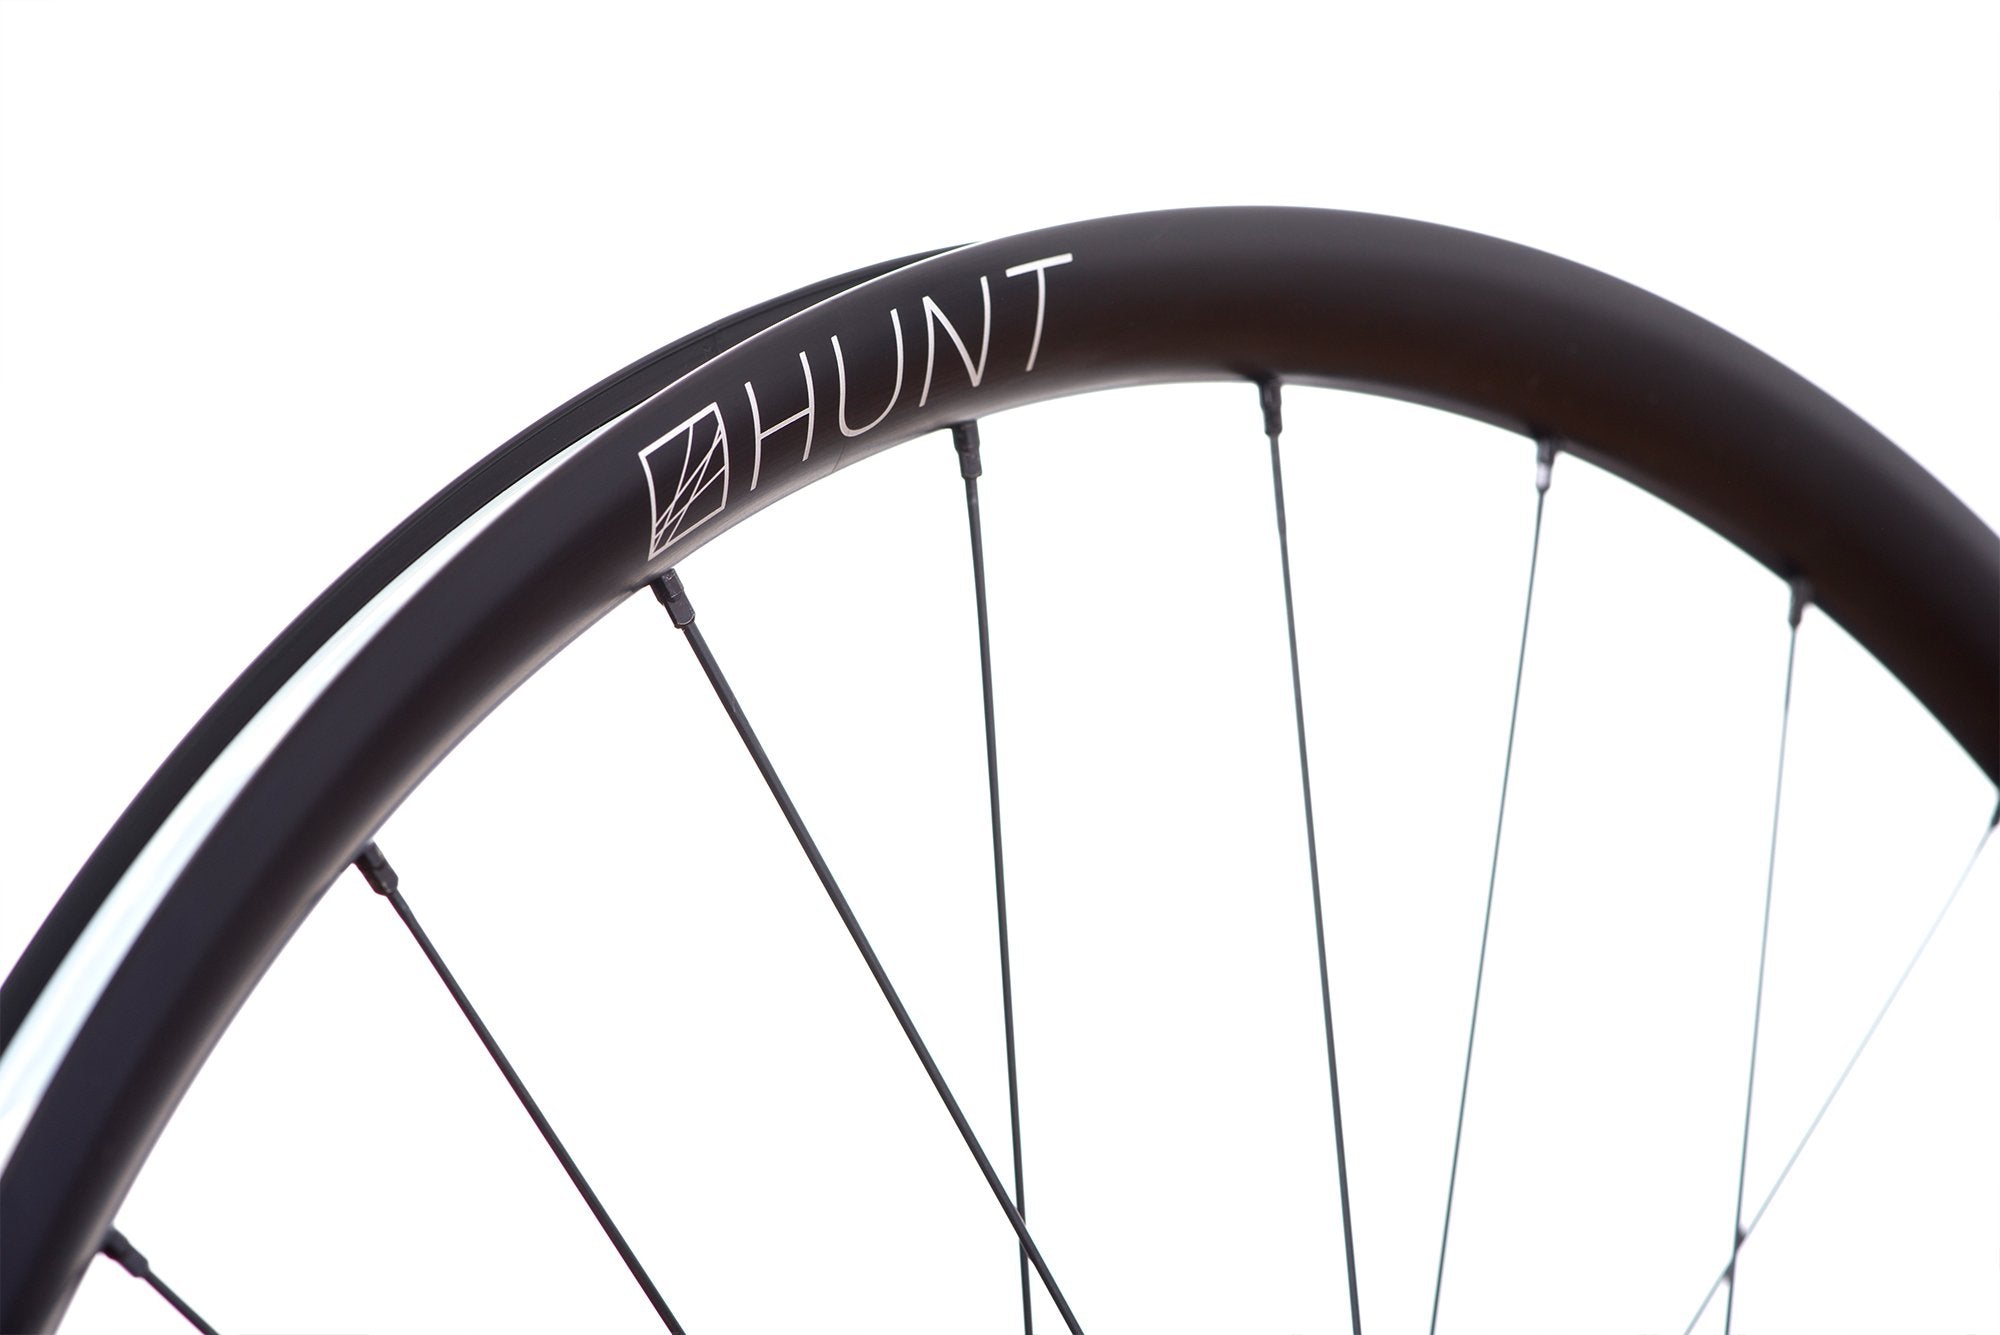 <h1>Rims</h1><i>A strong and lightweight 6066-T6 heat-treated rim features an asymmetric shape which is inverted from front to rear to provide balanced higher spoke tensions meaning your spokes stay tight for the long term. The rim profile is disc specific which allows higher-strength to weight as no reinforcement is required for a braking surface. The extra wide rim at 29mm (25mm internal) which creates a great tyre profile with wider 28-54mm tyres, giving excellent grip and lower rolling resistance.</i>